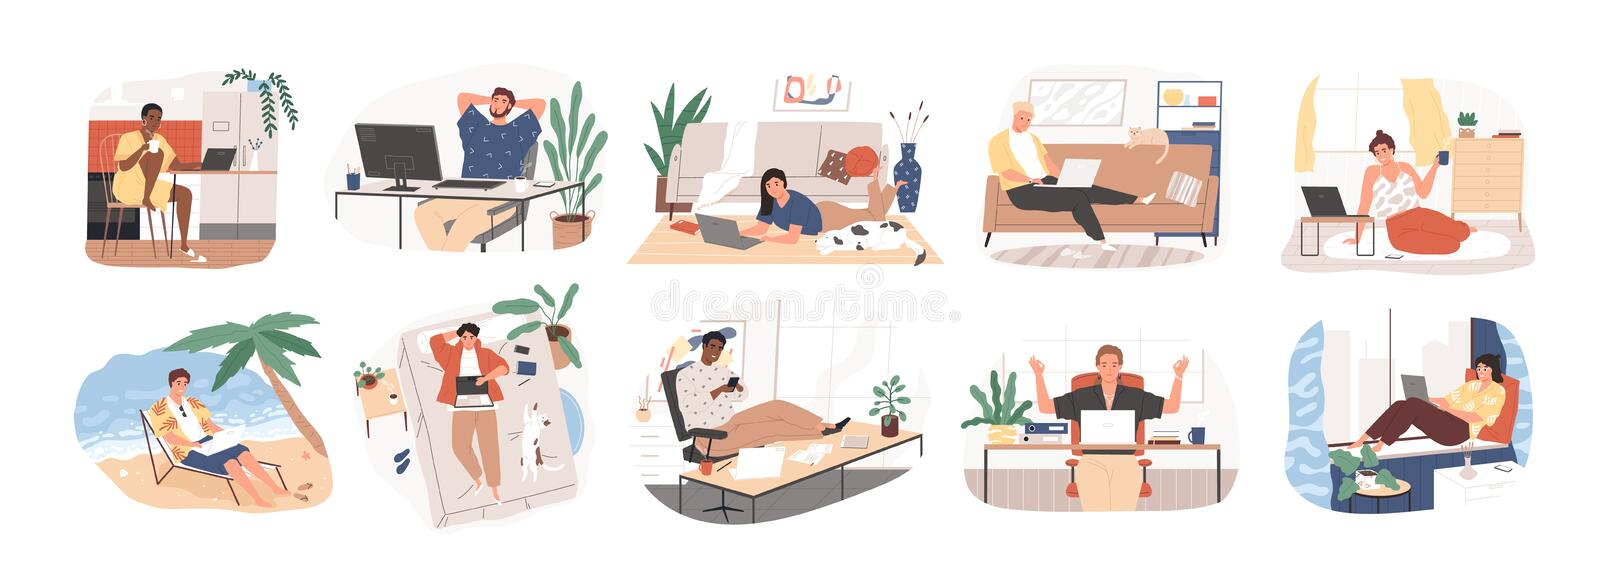 Freelance people work in comfortable conditions set vector flat illustration. Freelancer character working from home or. Beach at relaxed pace, convenient stock illustration